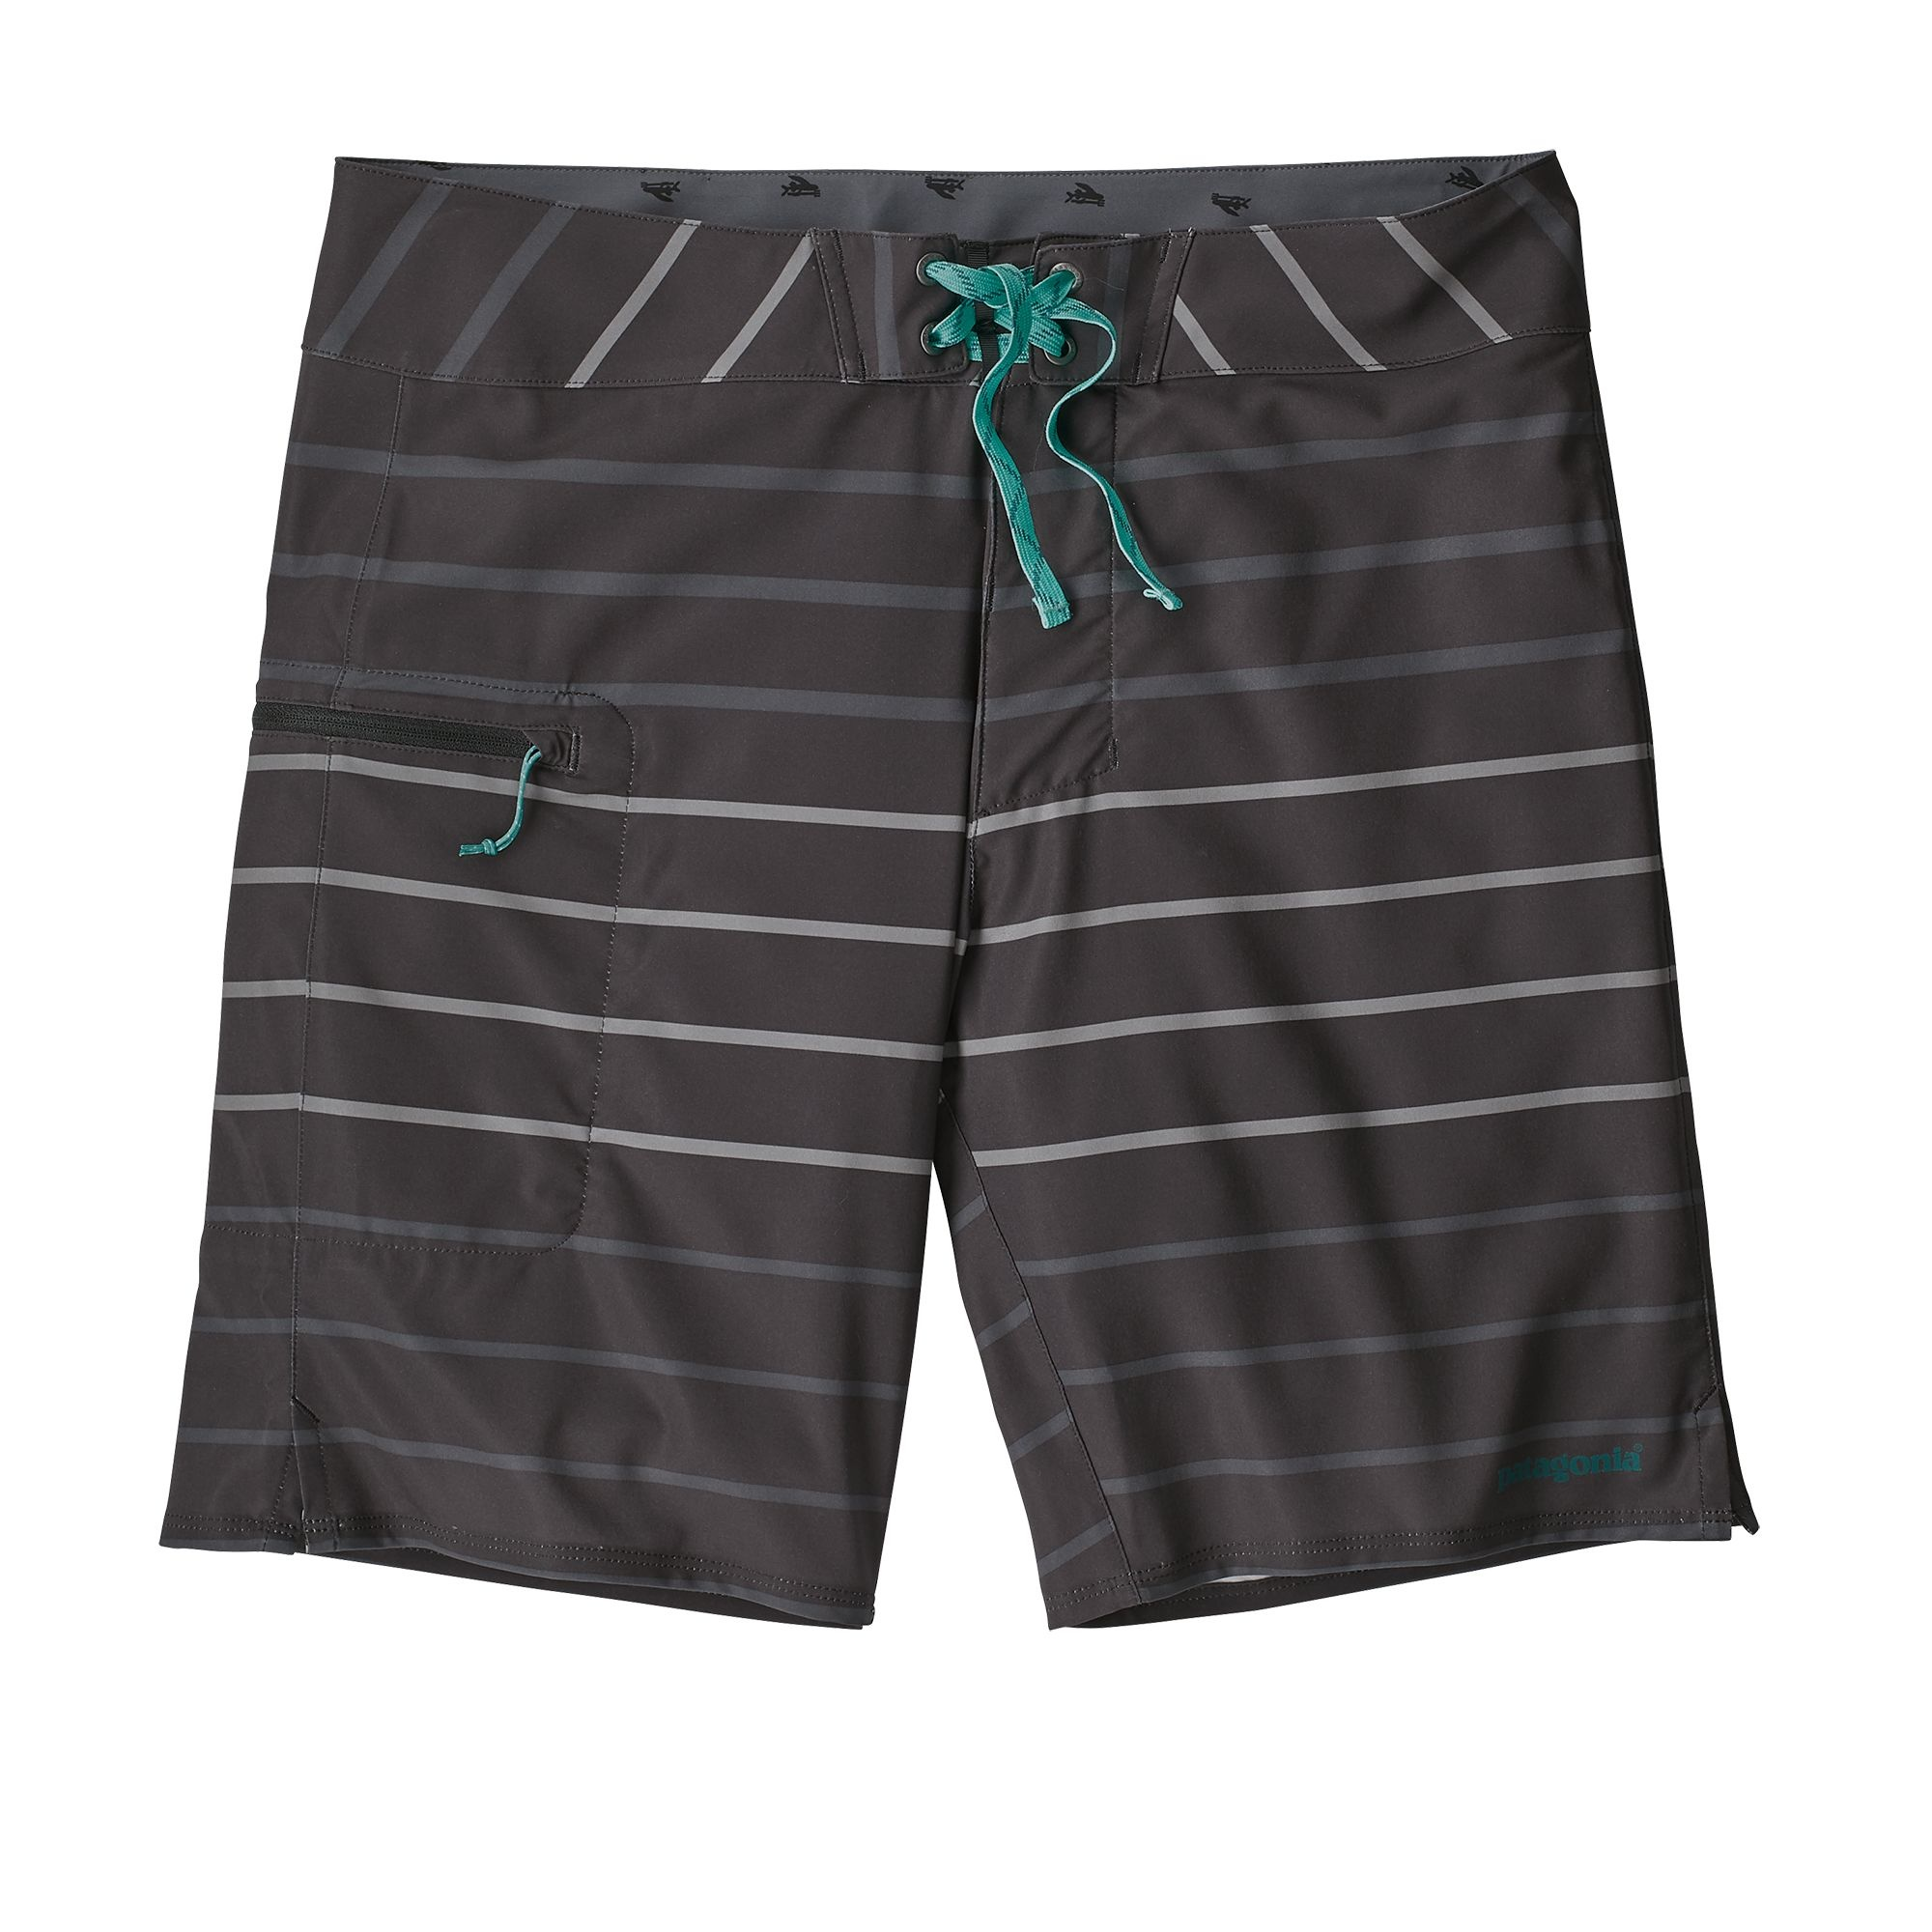 Patagonia Patagonia M's Stretch Planing Boardshorts 19in,